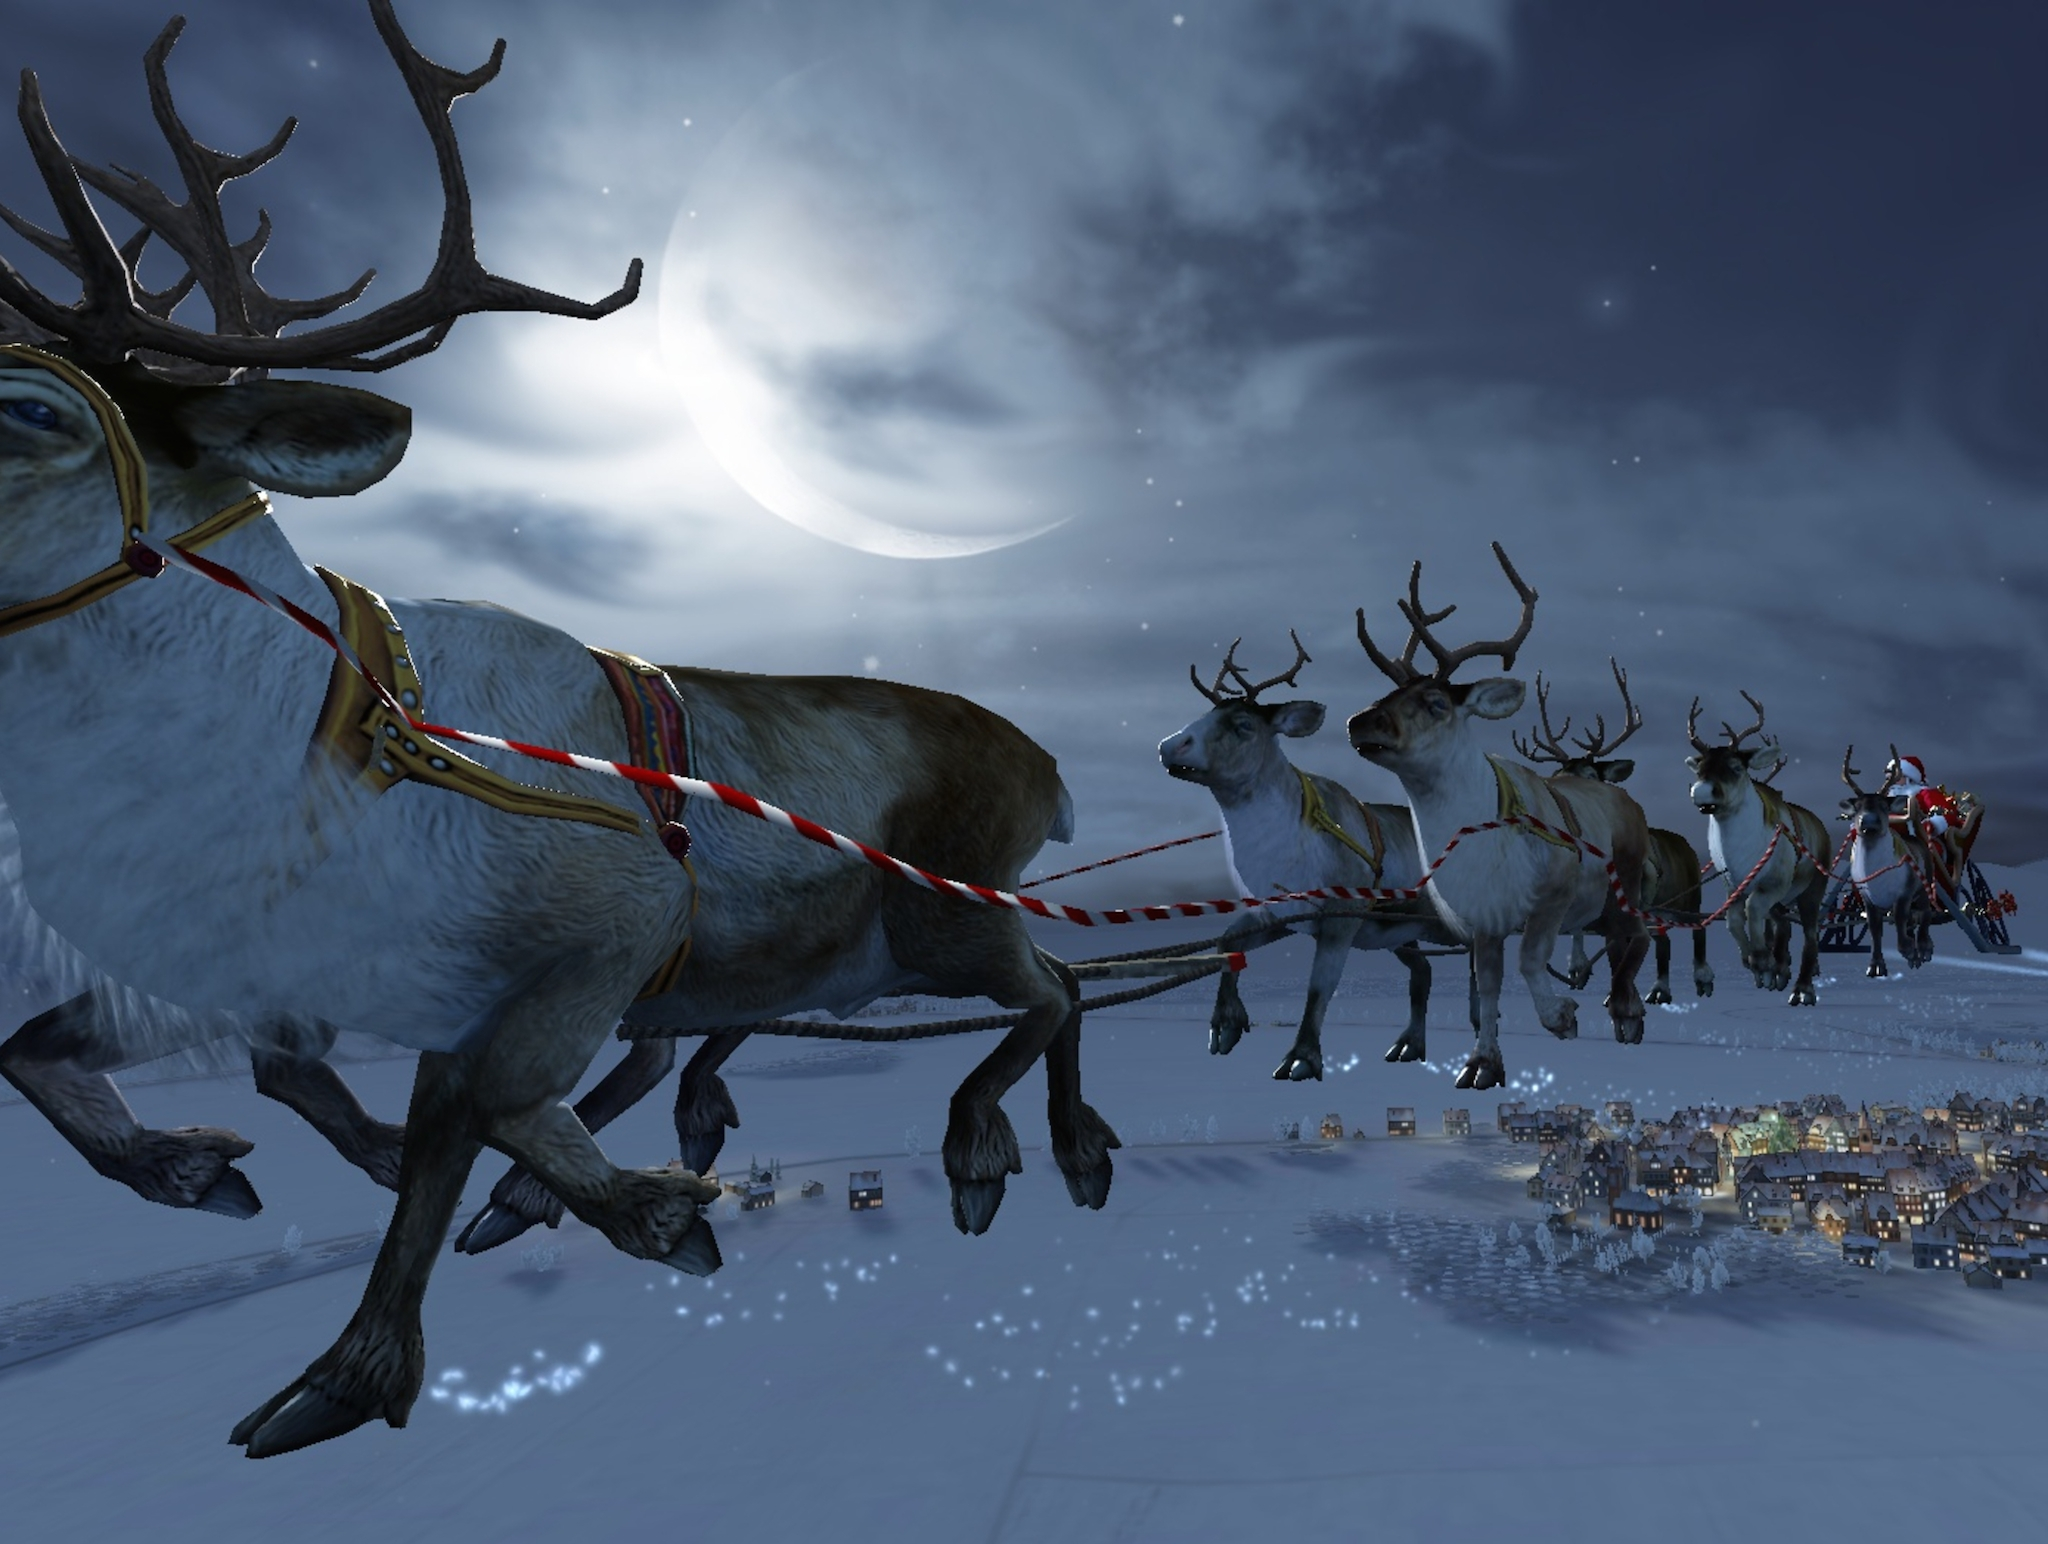 Rare image of Santa Claus in his sleigh, pulled by nine reindeer above an unidentified Scandinavian village on his annual Christmas Eve worldwide journey.